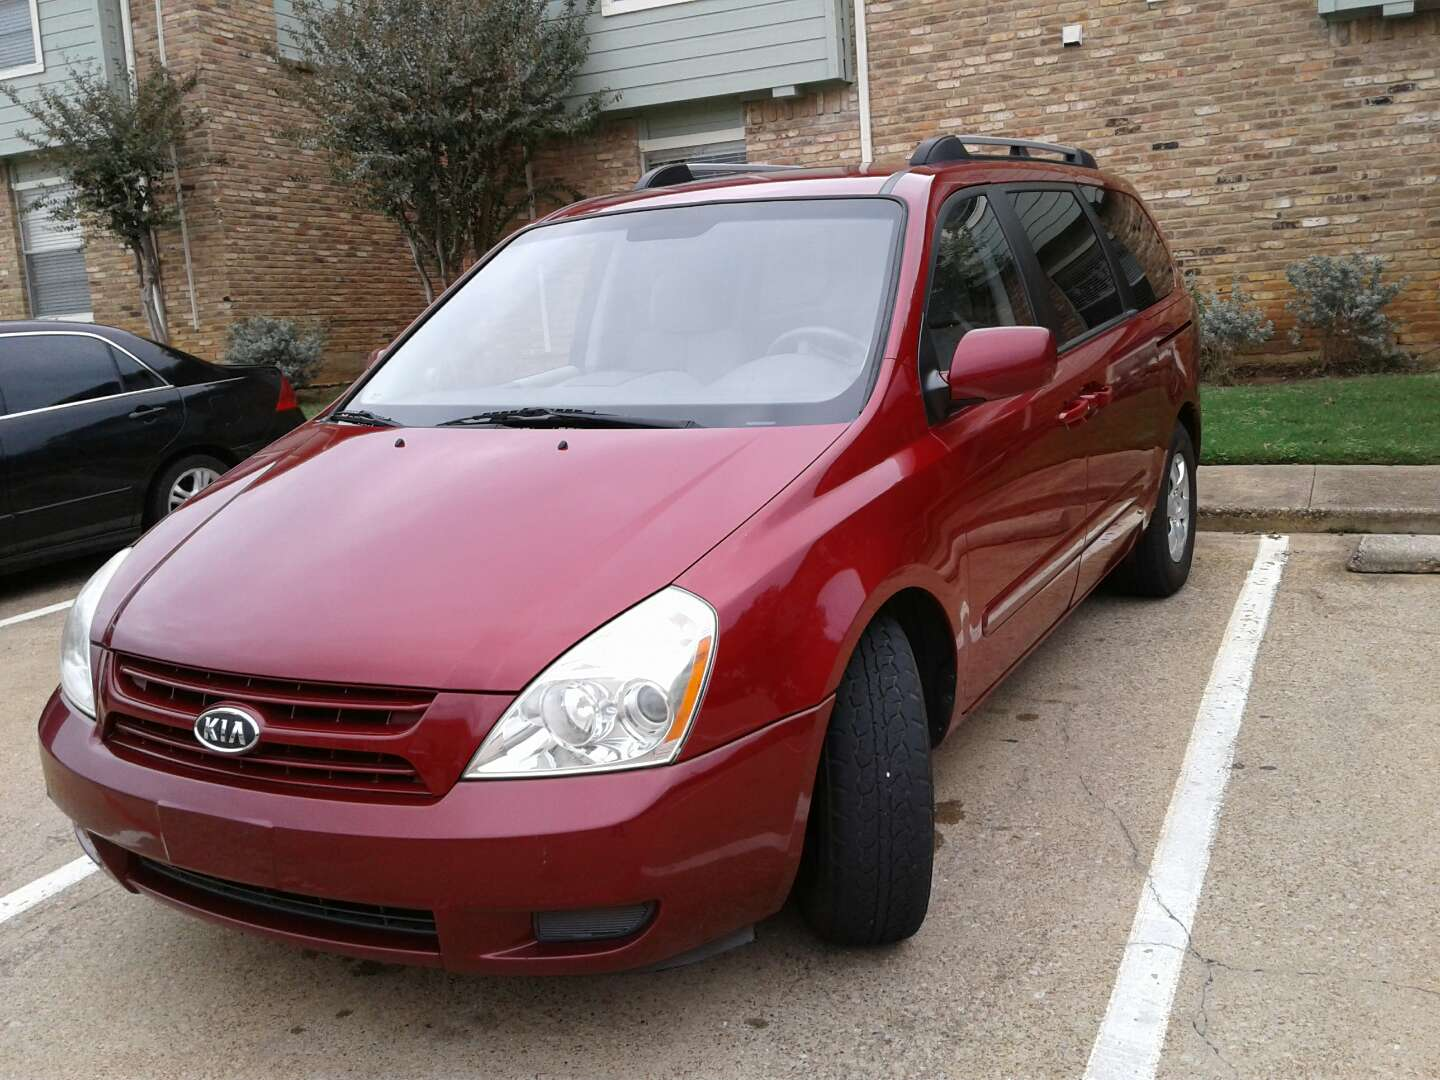 2008 kia sedona lx for sale in bedford tx 5miles buy and sell. Black Bedroom Furniture Sets. Home Design Ideas